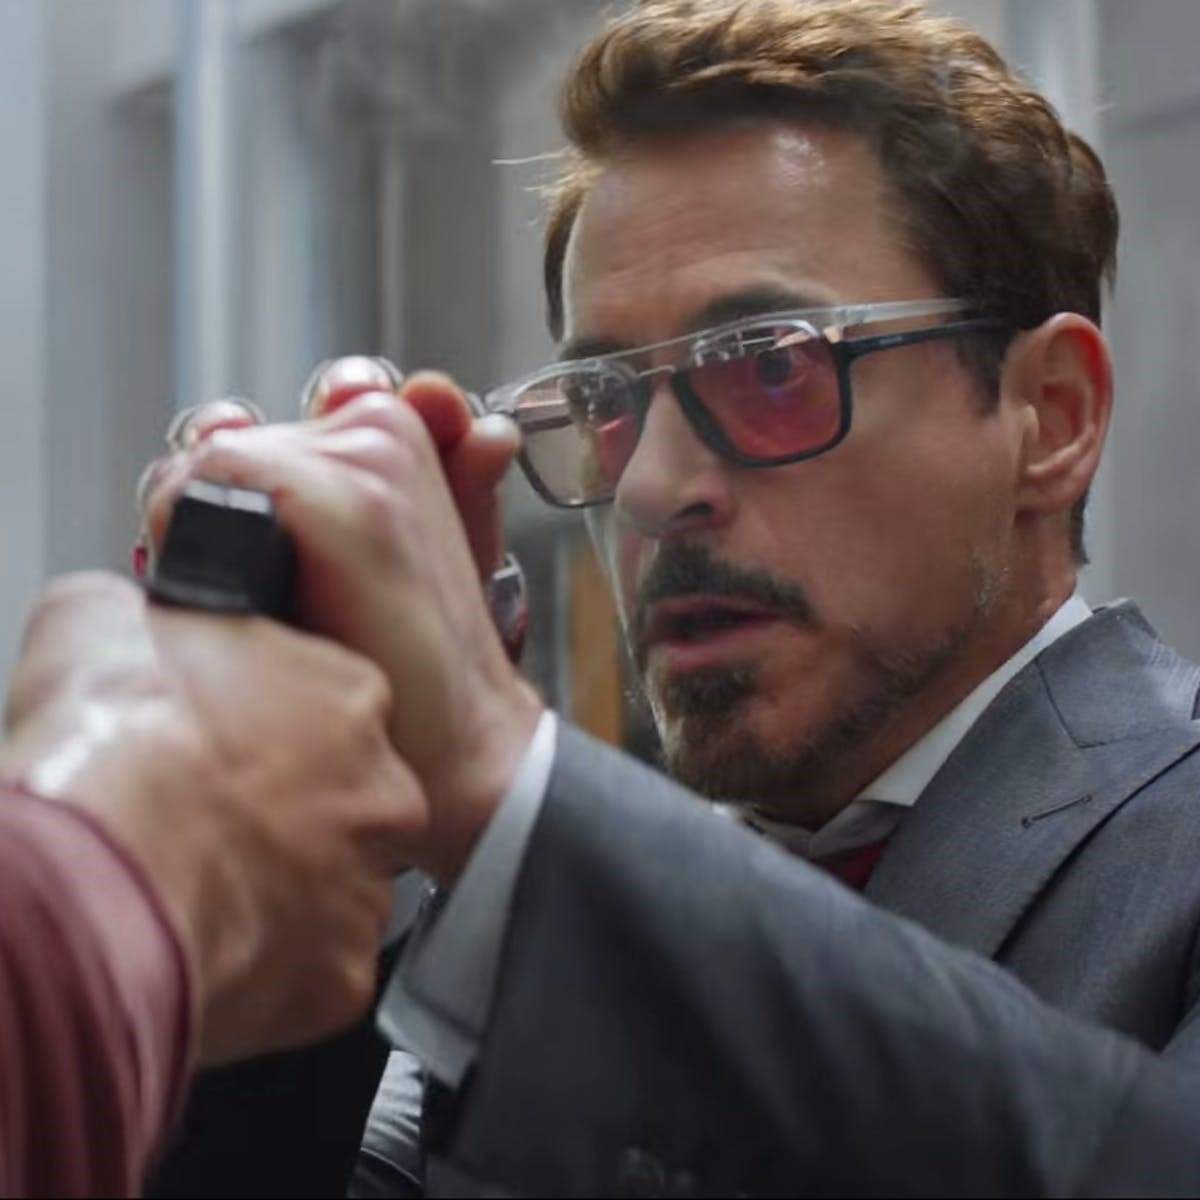 Spider-Man Far From Home Showcases Smart Glasses Potential